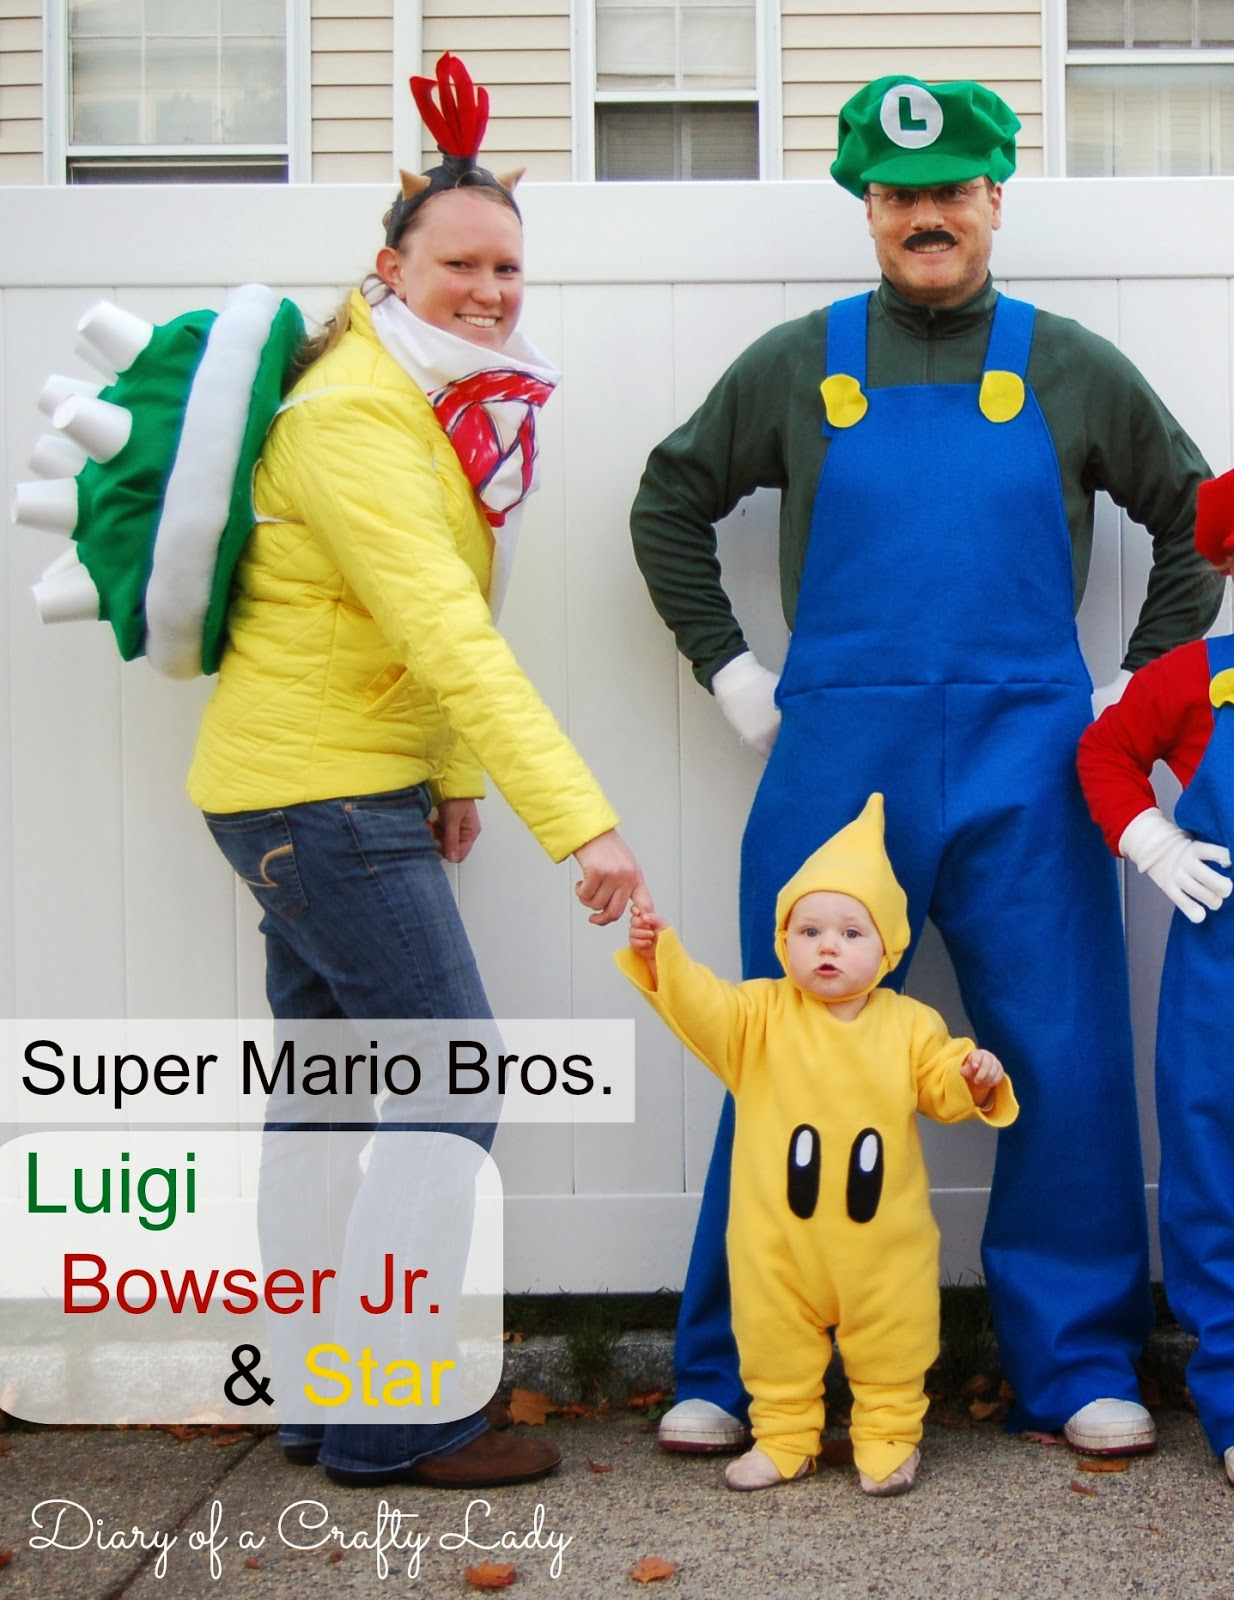 Diary of a crafty lady luigi bowser jr star super mario i did it in time for our church halloween party i finished our family super mario bros costumes solutioingenieria Images